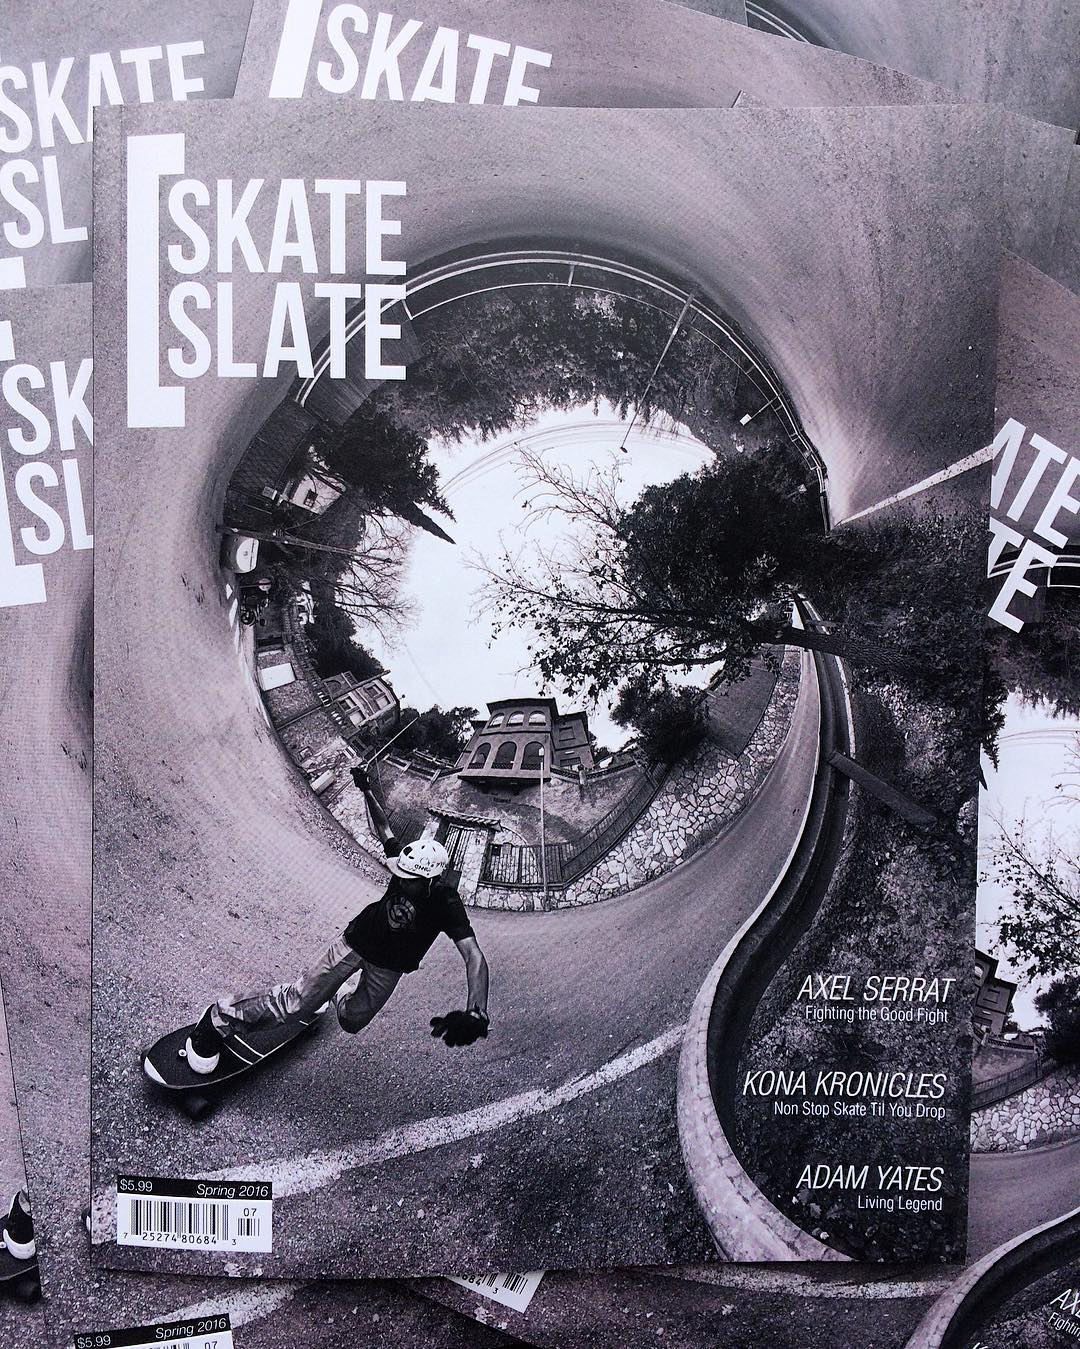 We couldn't be more stoked to see Axel Serrat (@agboton) on the cover of the new @skateslate magazine. His positivity and pure stoke on life and skateboarding is contagious. It's great to see him grace the pages of this issue.  Pick up a copy and give...